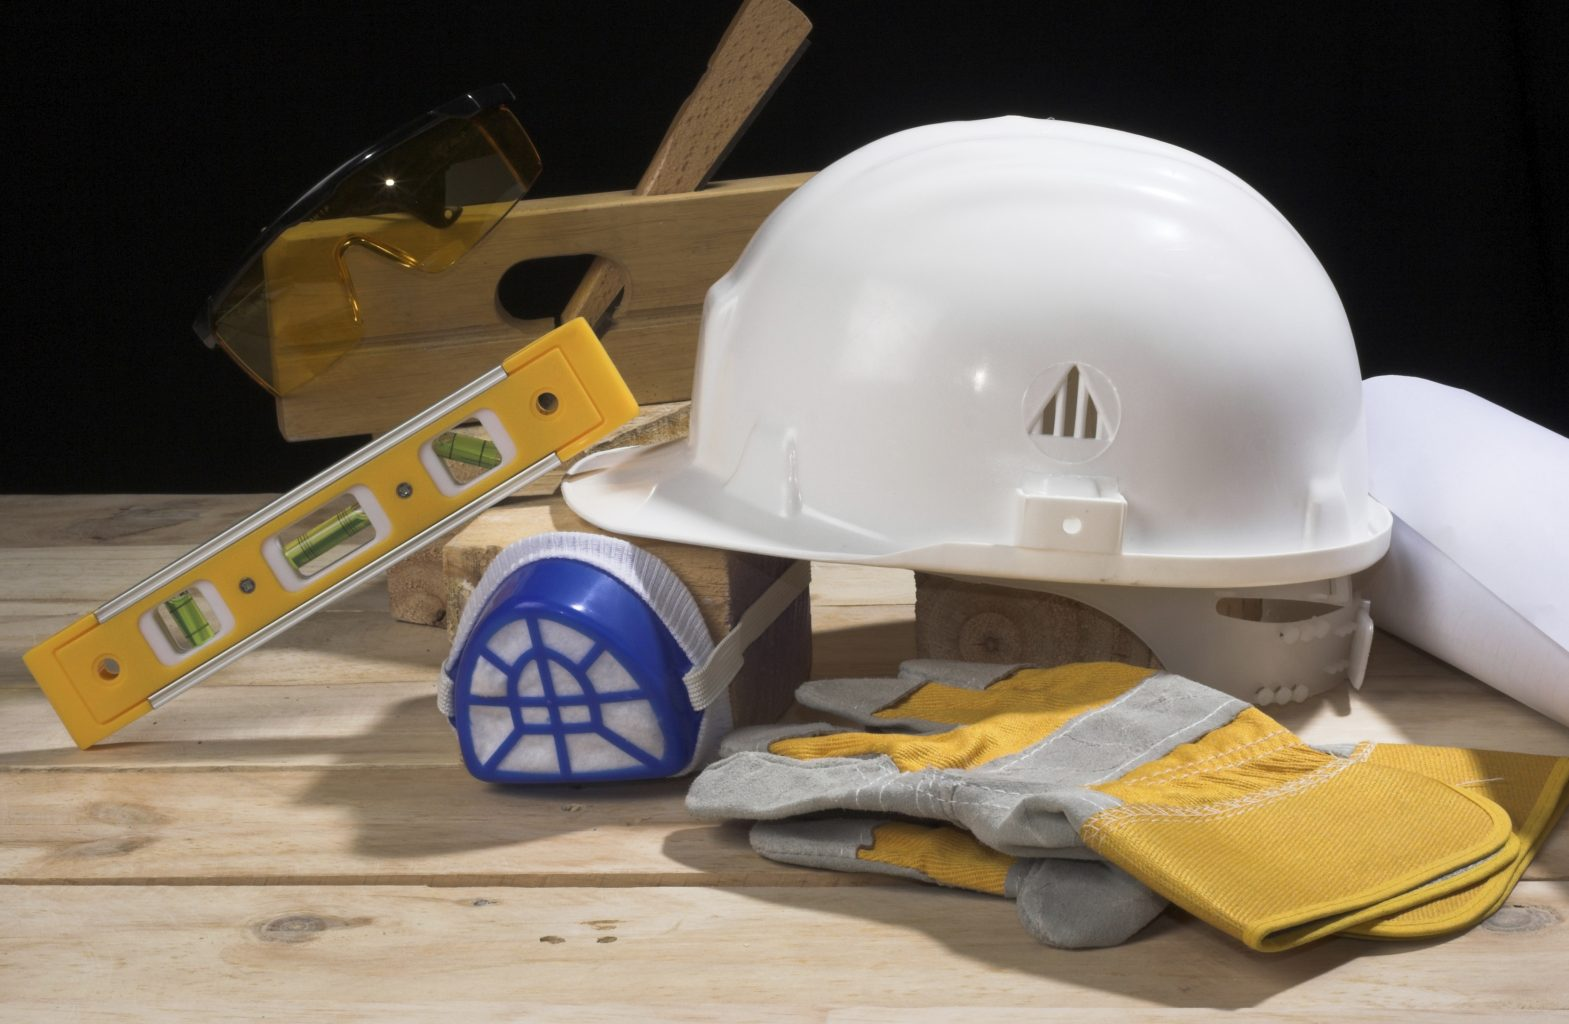 Benefits to business: Health and Safety Training in the Workplace